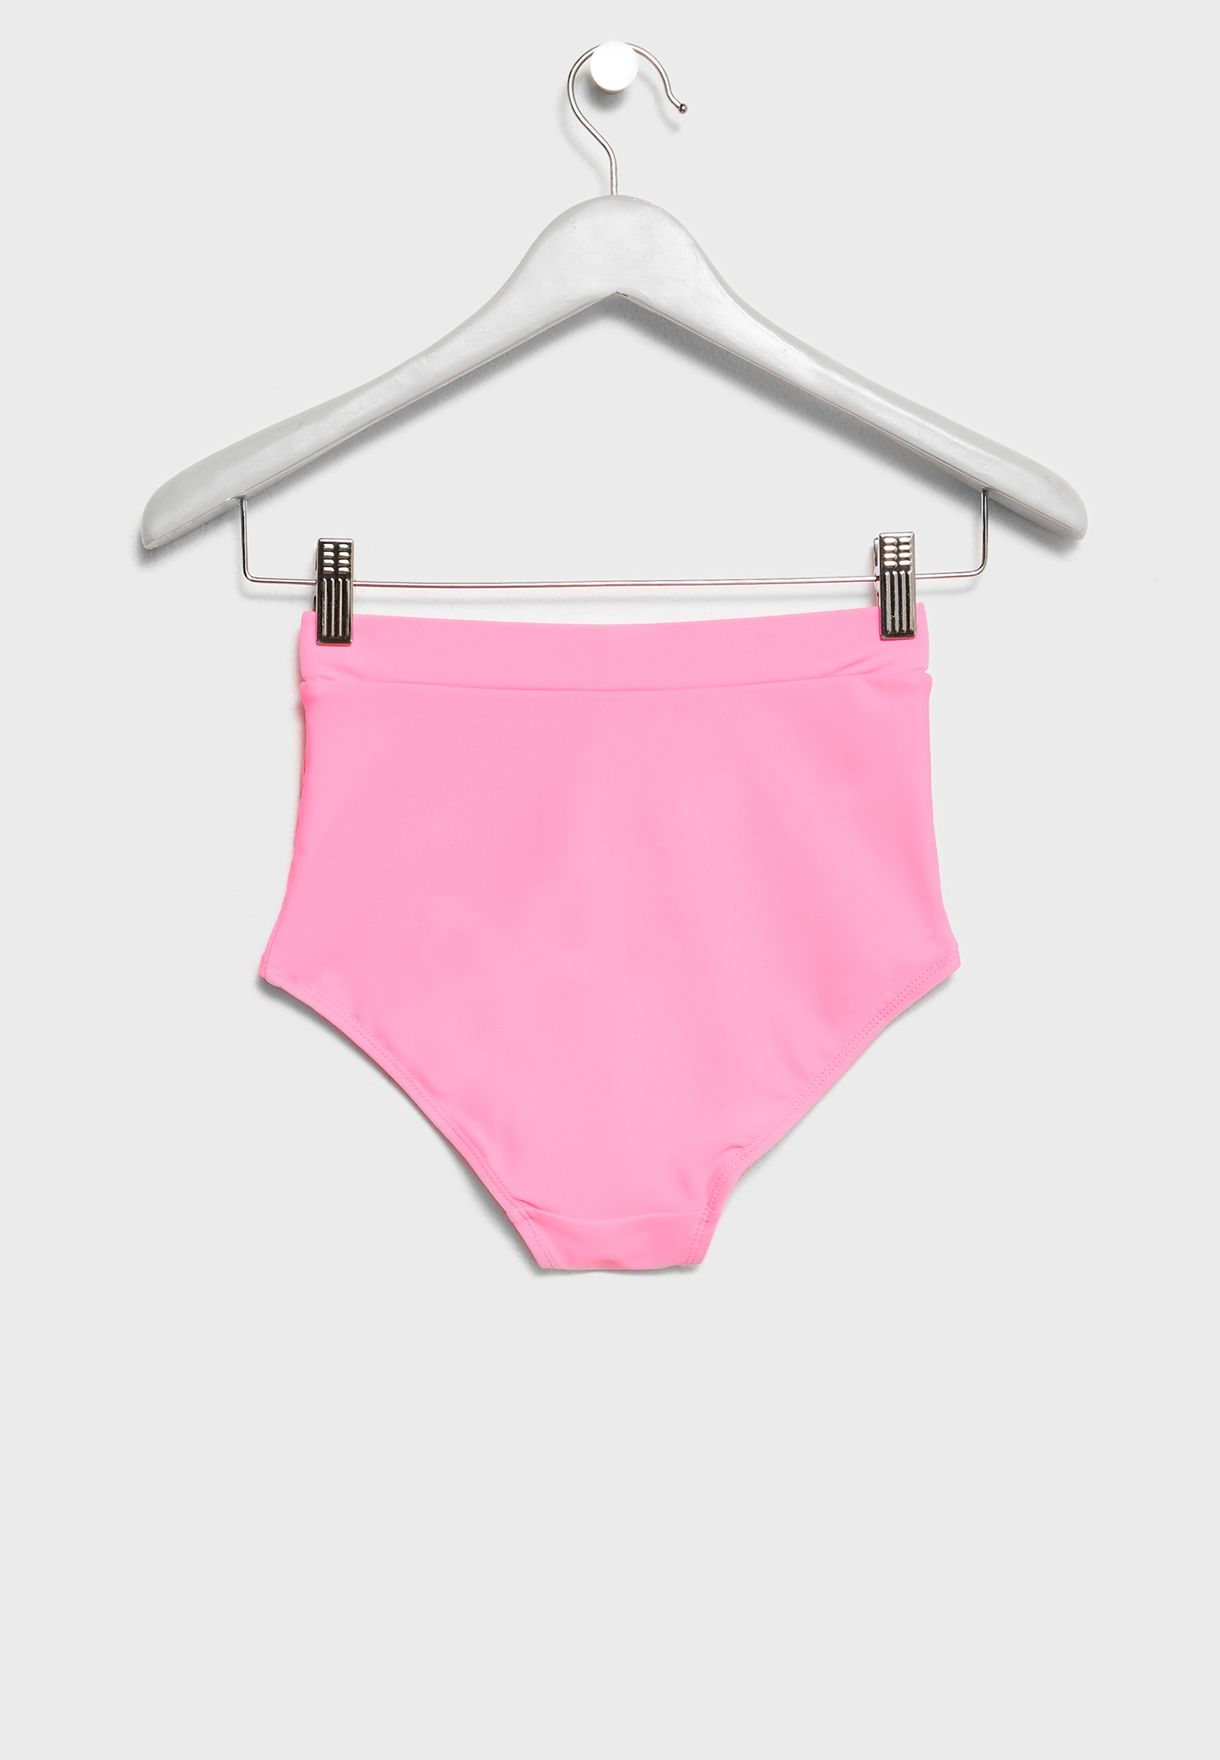 59328c345715c Shop New Look pink Teen Embroidered Bikini Set 5609882 for Kids in ...